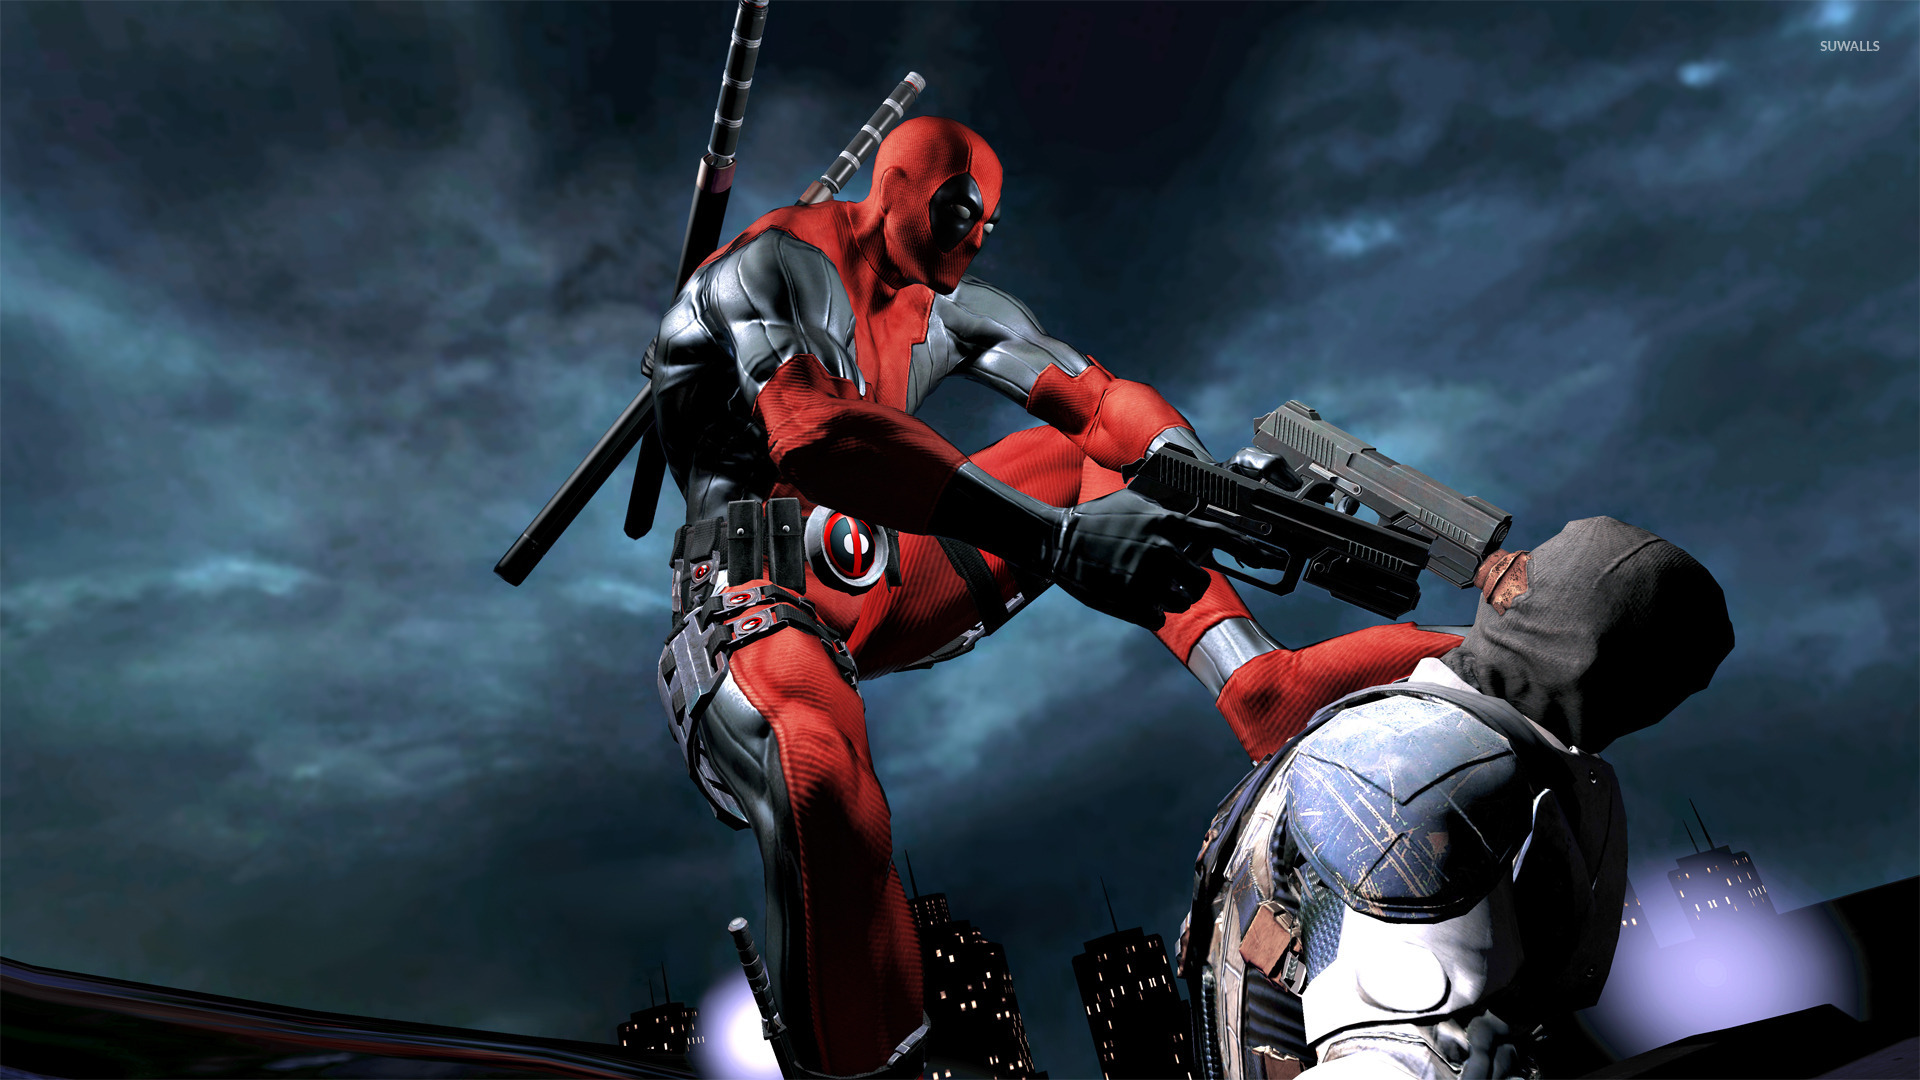 10 New Hd Wallpapers 1080p Games Full Hd 1920 1080 For Pc: Deadpool [10] Wallpaper